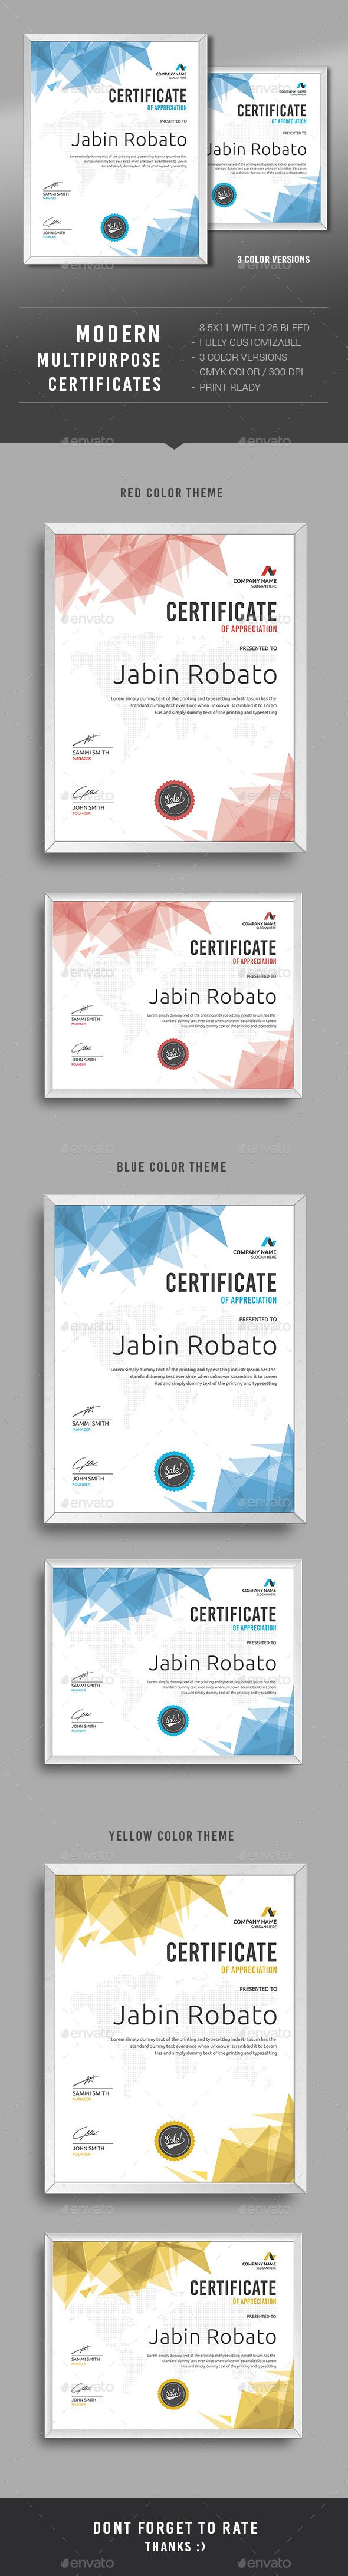 Modern Multipurpose Certificates Template PSD. Download here: http://graphicriver.net/item/modern-multipurpose-certificates/12869634?ref=ksioks